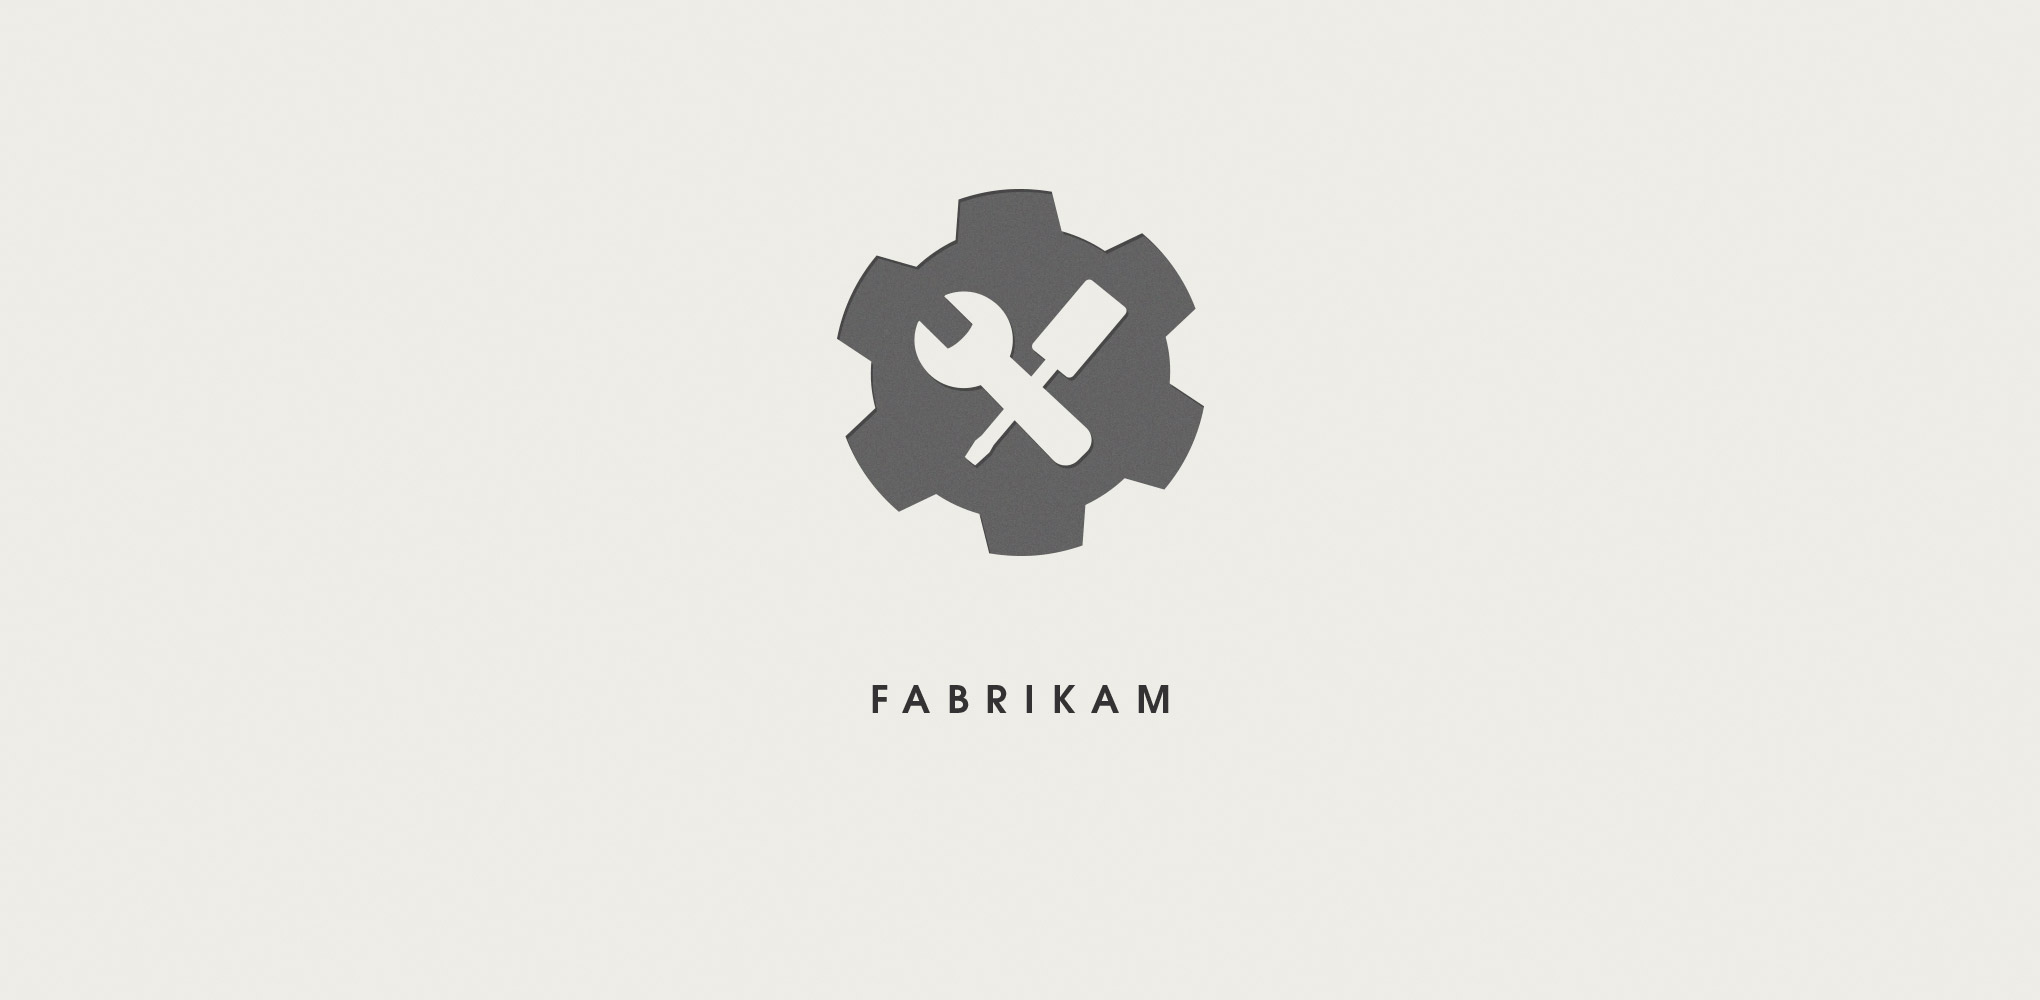 Blackspike Design Ltd Fabrikam Logo Ideas